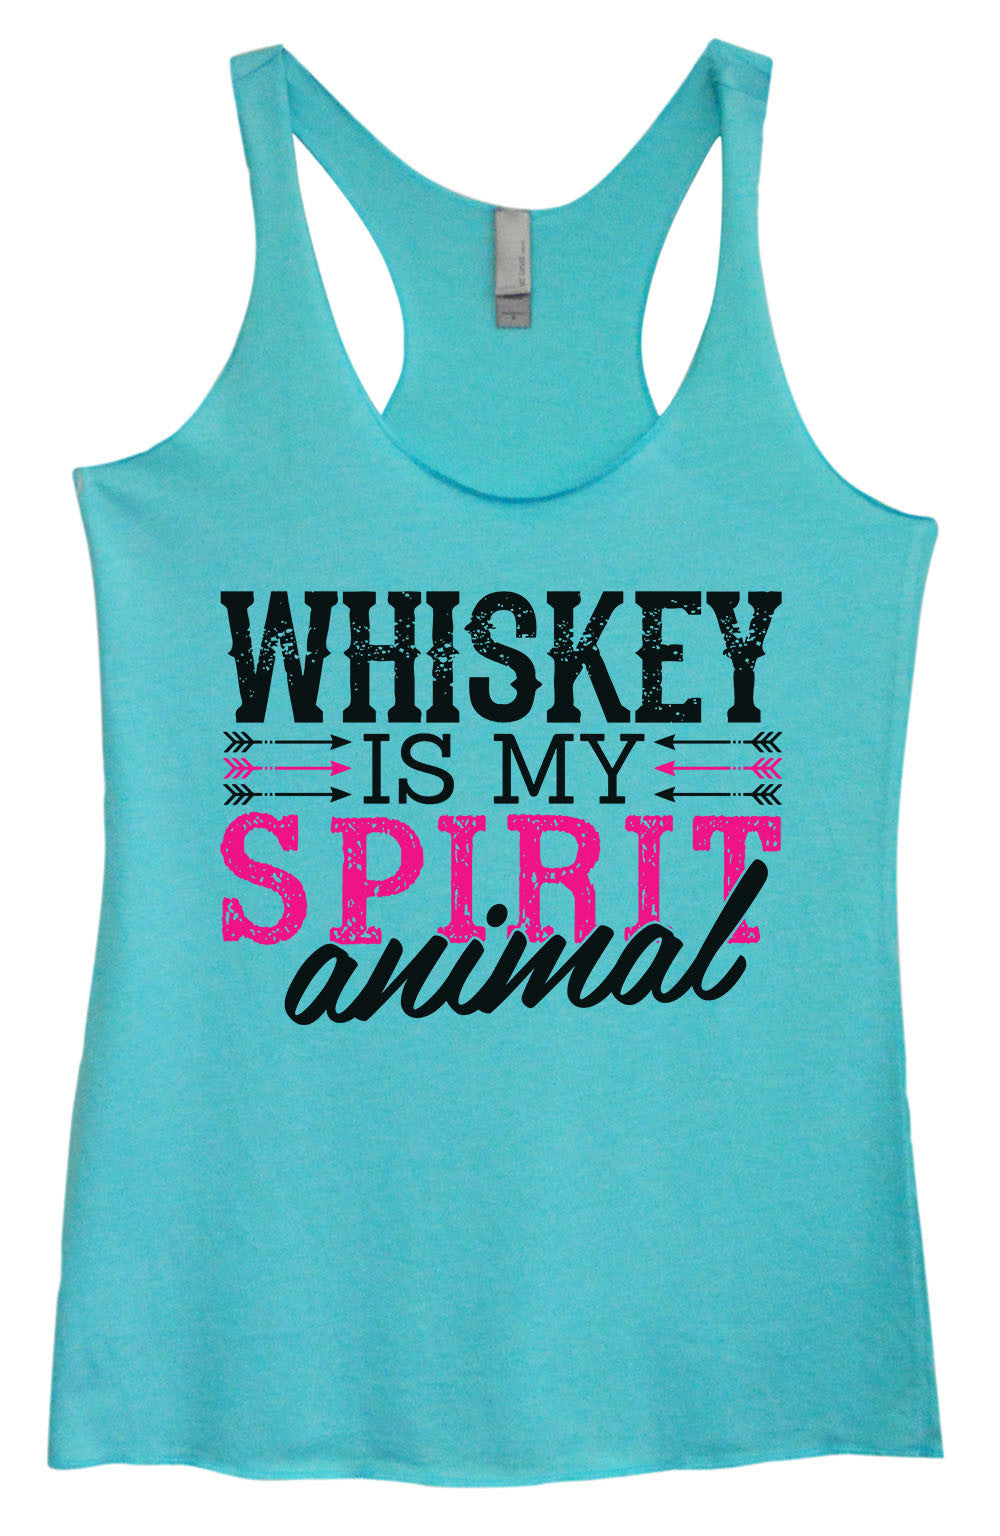 Womens Fashion Triblend Tank Top - Whiskey Is My Spirit Animal - Tri-1435 - Funny Shirts Tank Tops Burnouts and Triblends  - 4